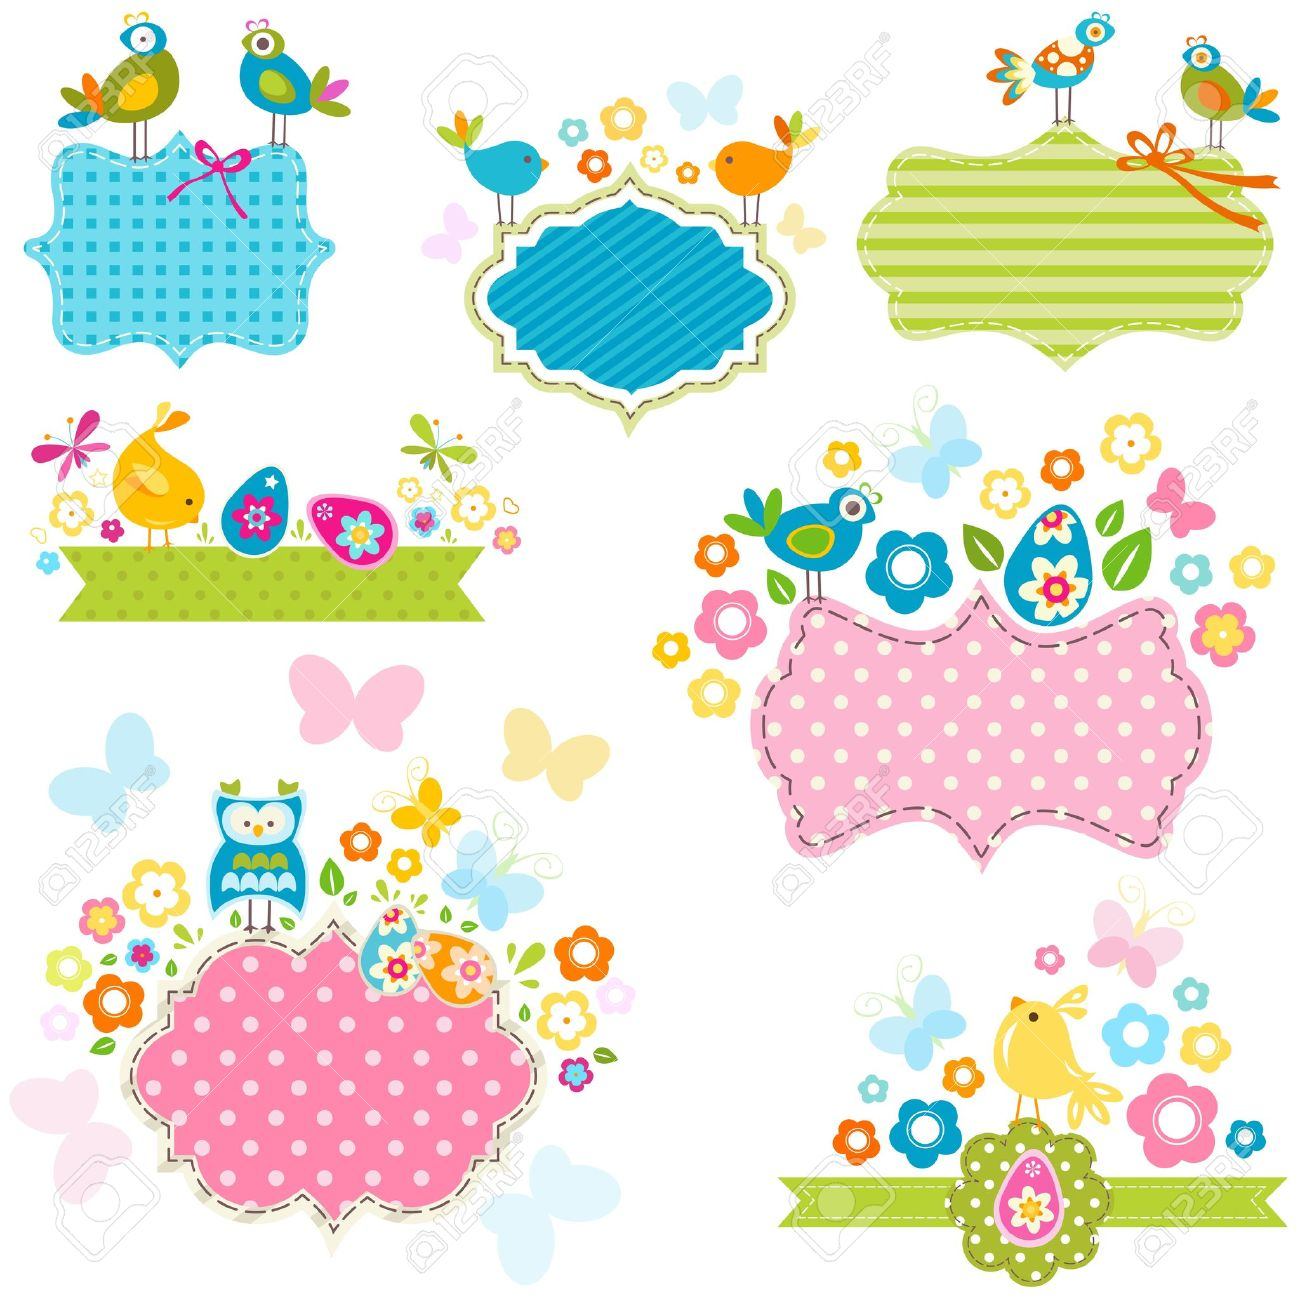 easter frames set with birds and flowers stock vector 18723124 - Easter Frames